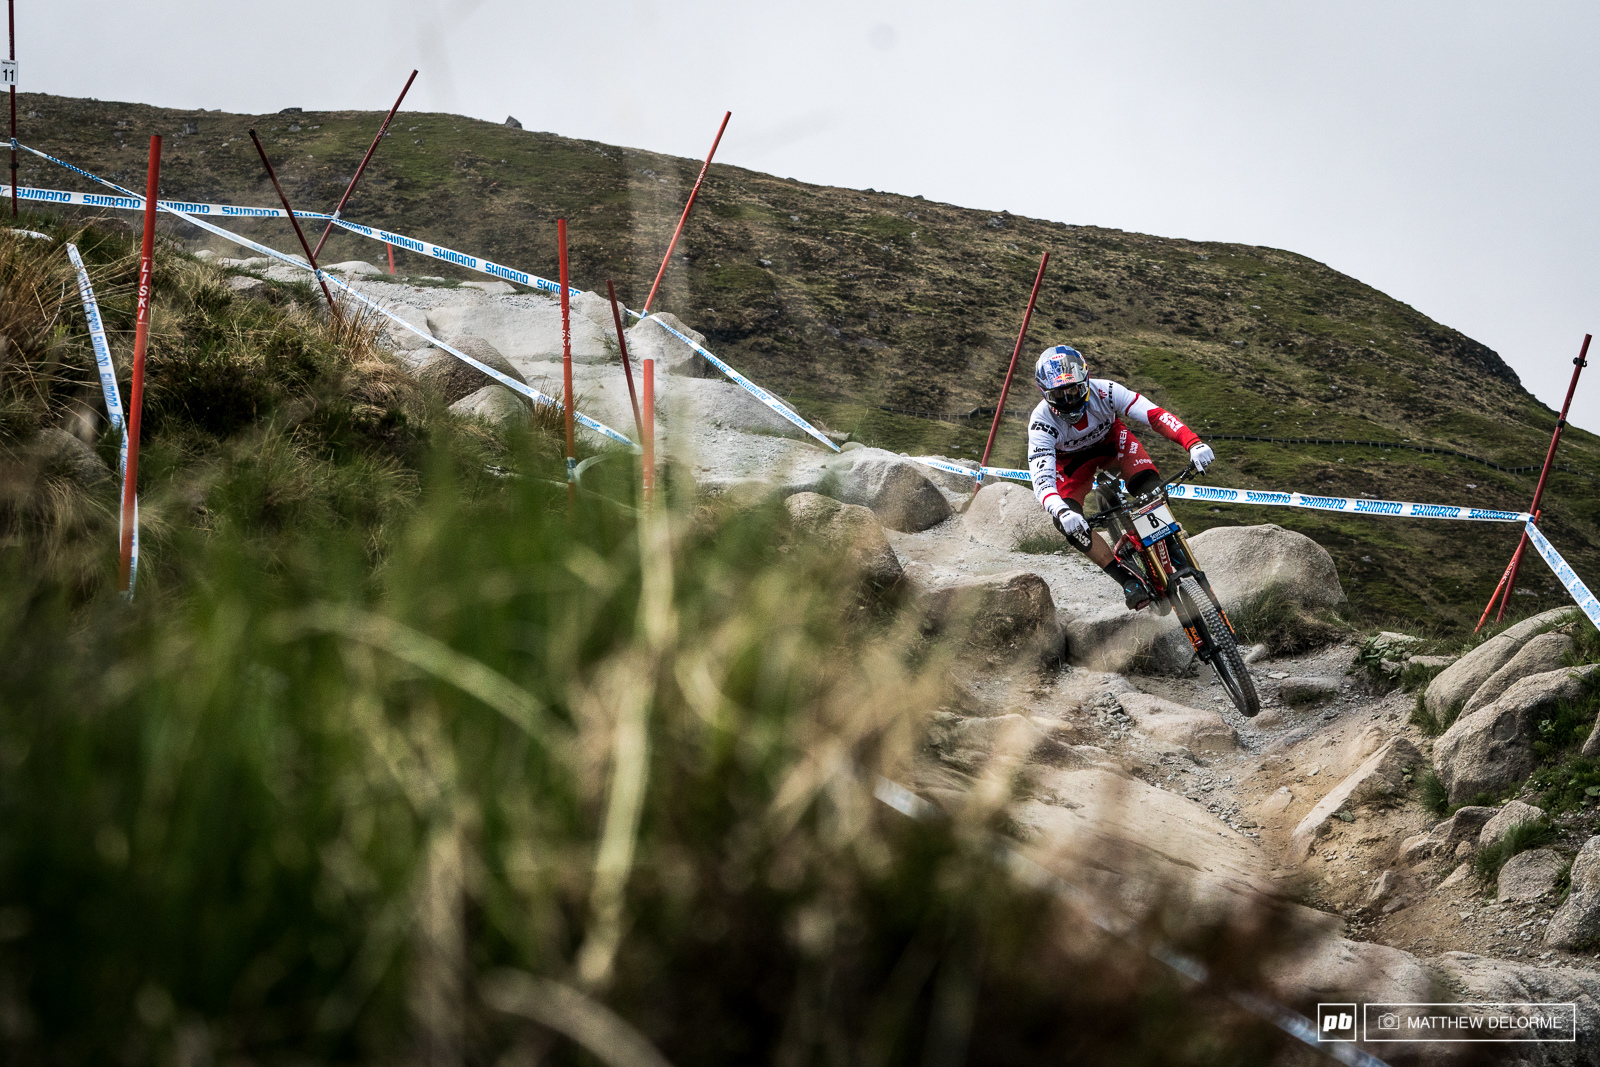 Gee Atherton was fastest in qualifying today. His month of testing and dialing in his bike has started to pay off.